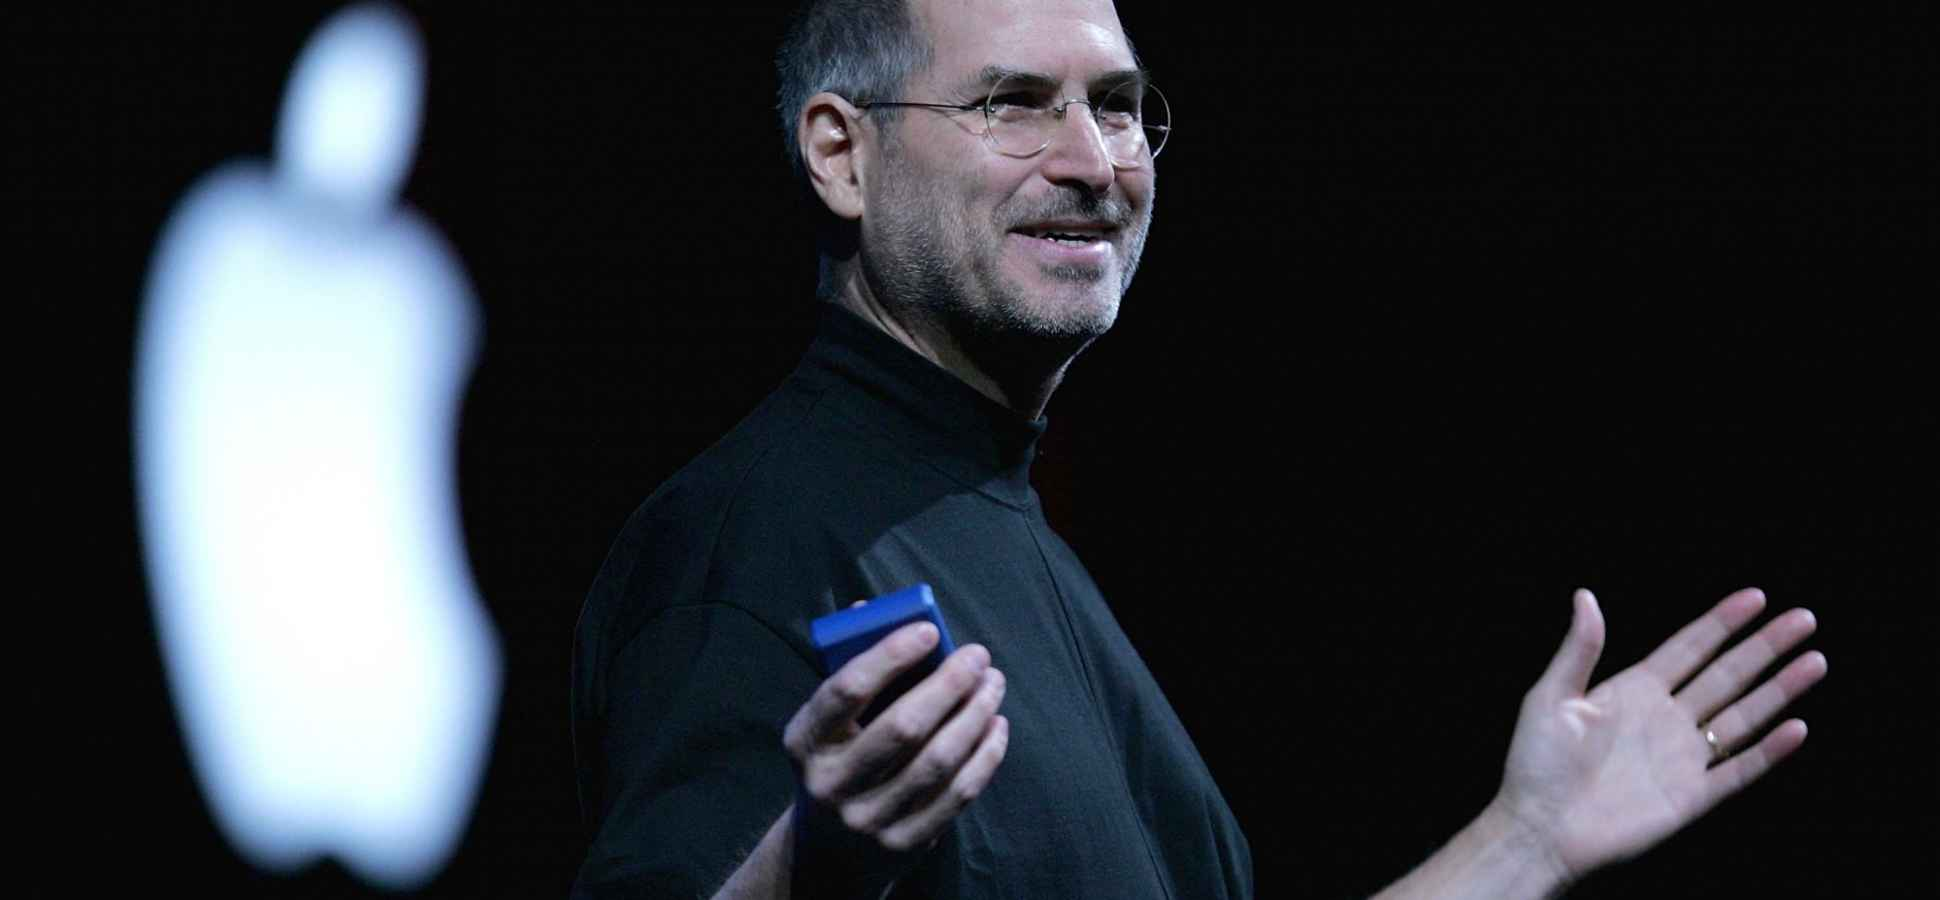 Steve Jobs Asked Himself This 1 Question Every Morning to Stay Successful